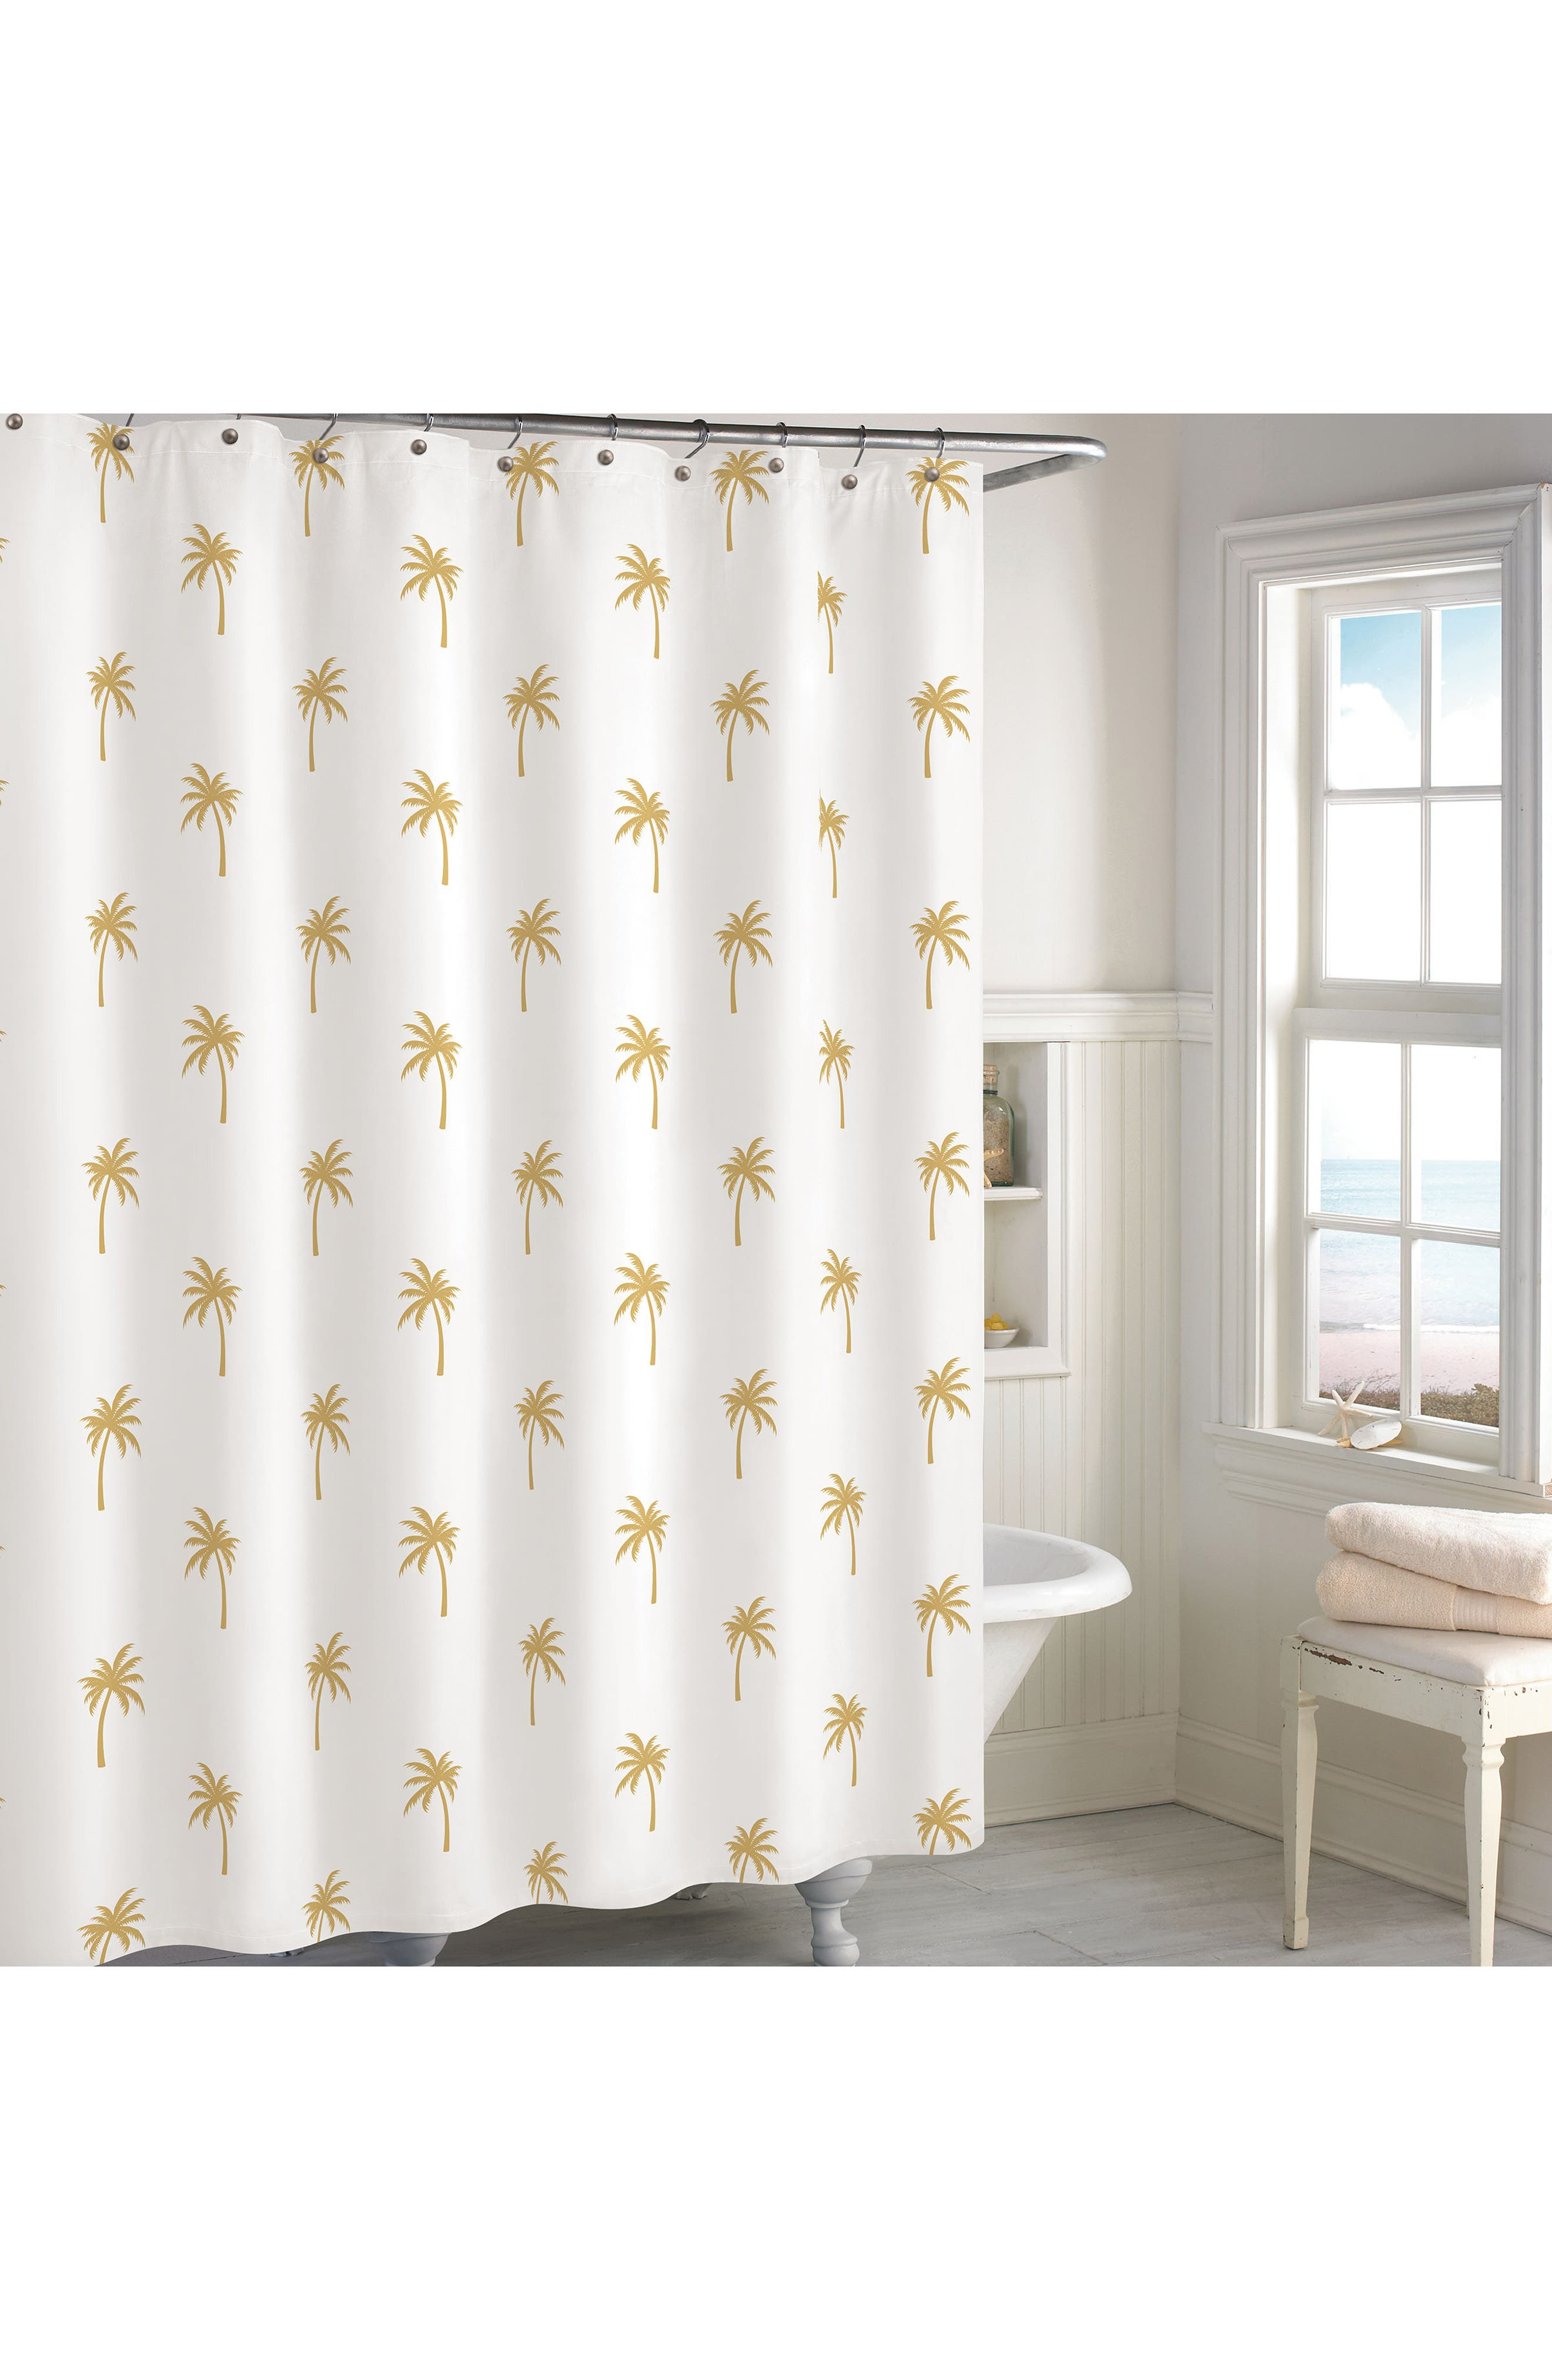 Main Image - Destinations Golden Pineapple Shower Curtain